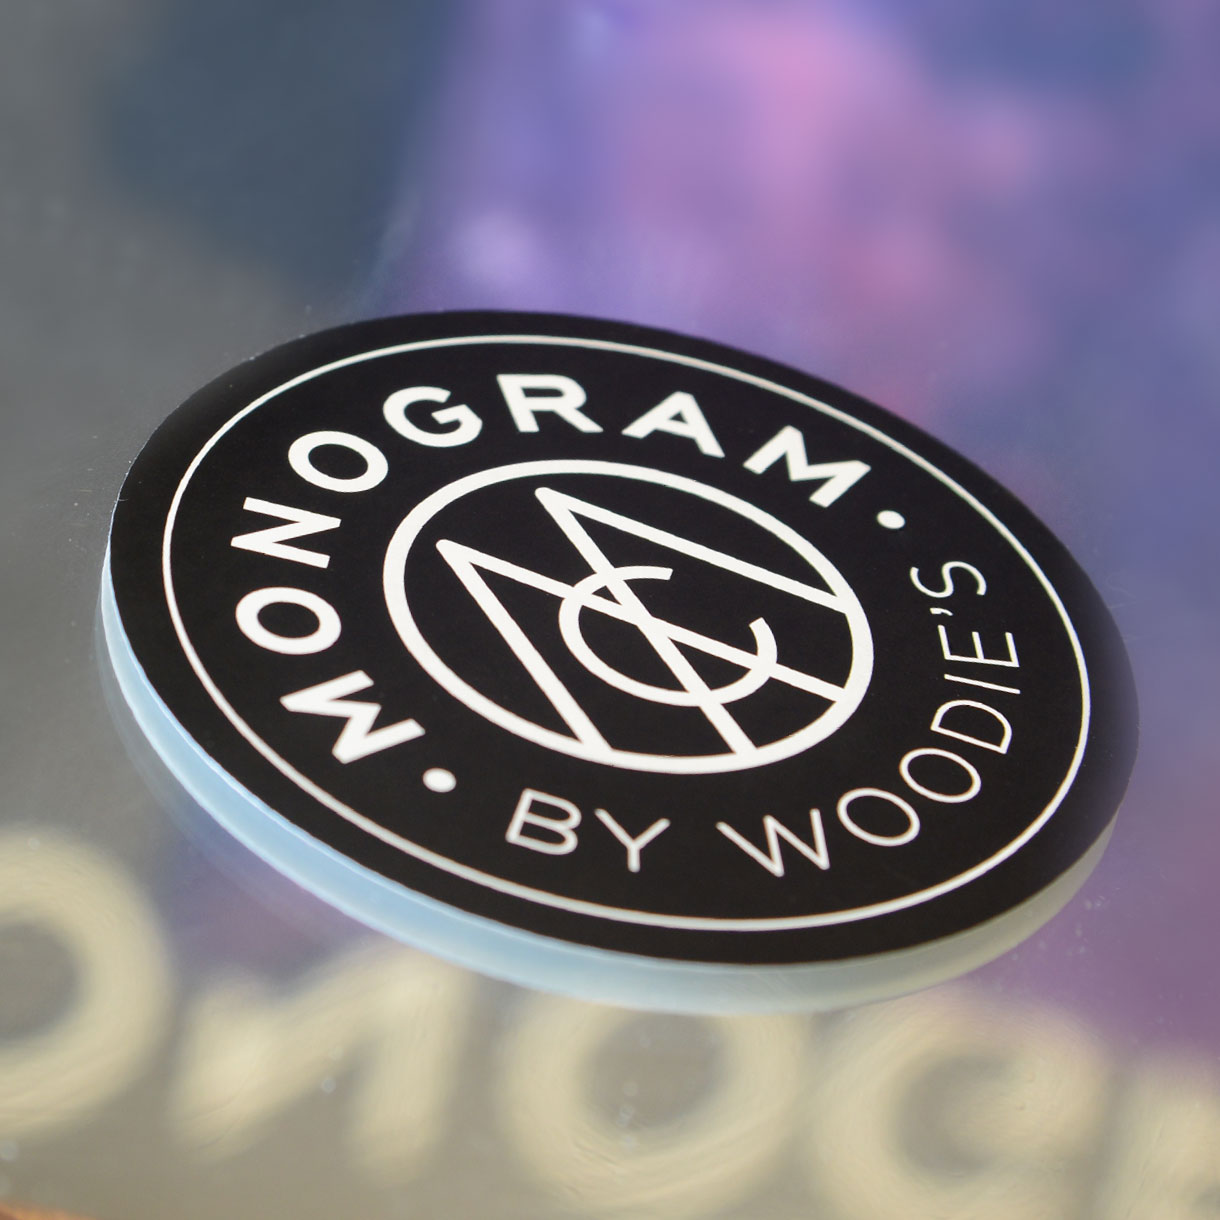 Principle brand agency Dublin Woodie's homewares brand design project monogram collection product sticker